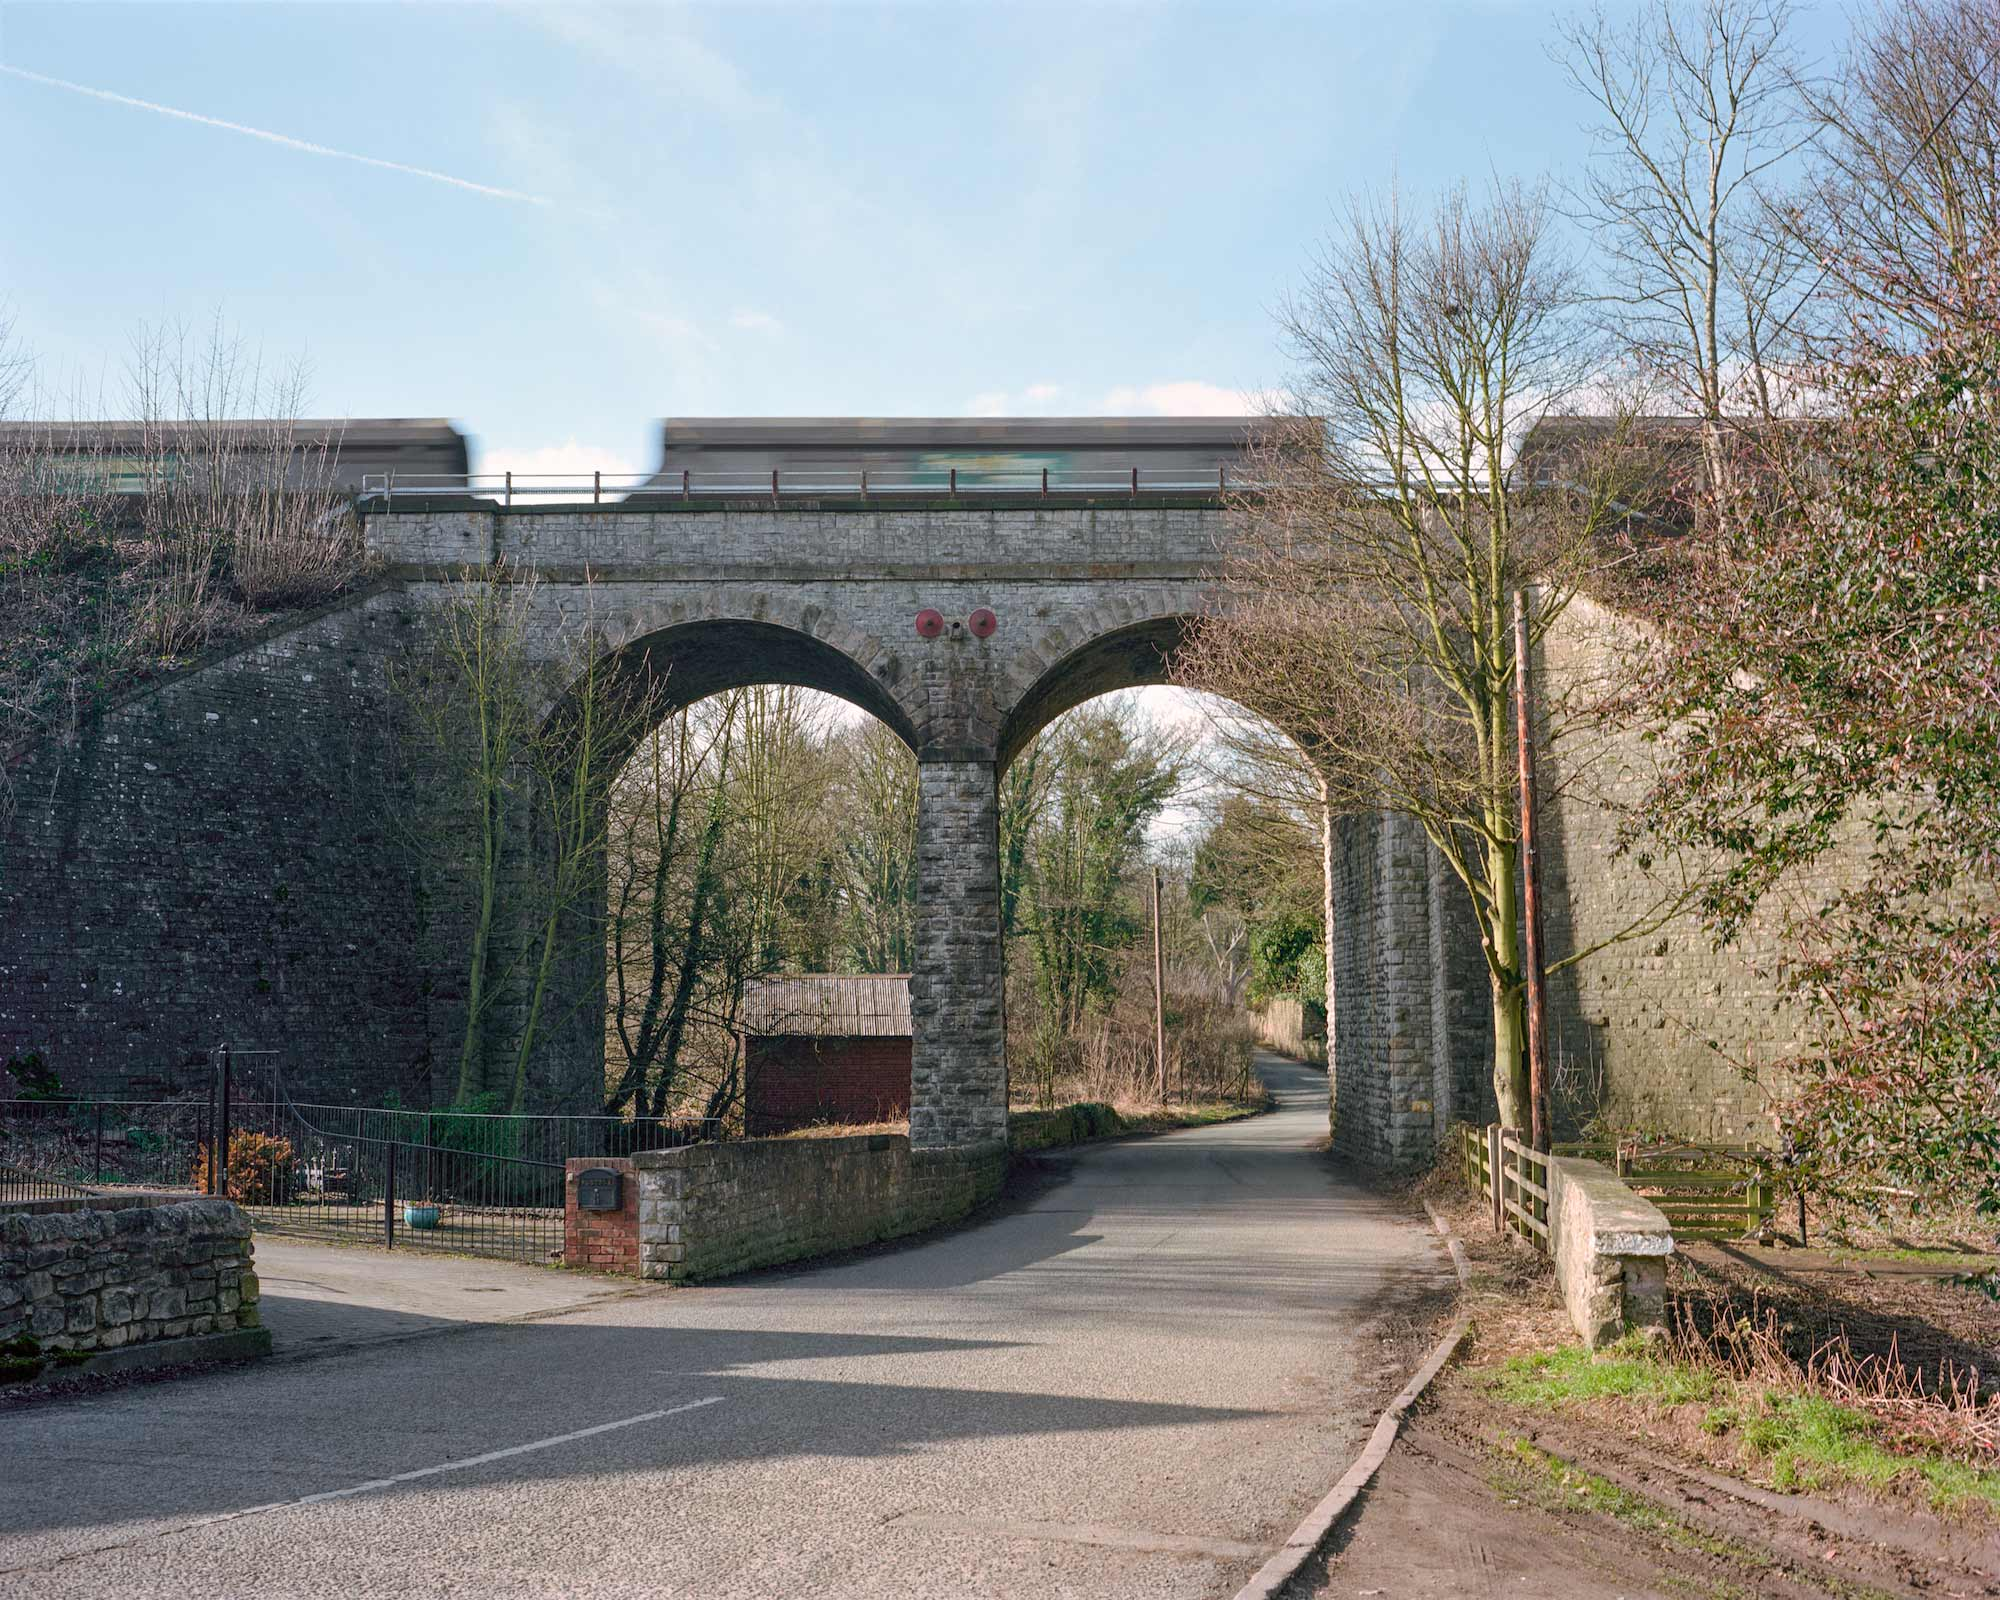 A coal train passing over Langwith viaduct, Derbyshire.